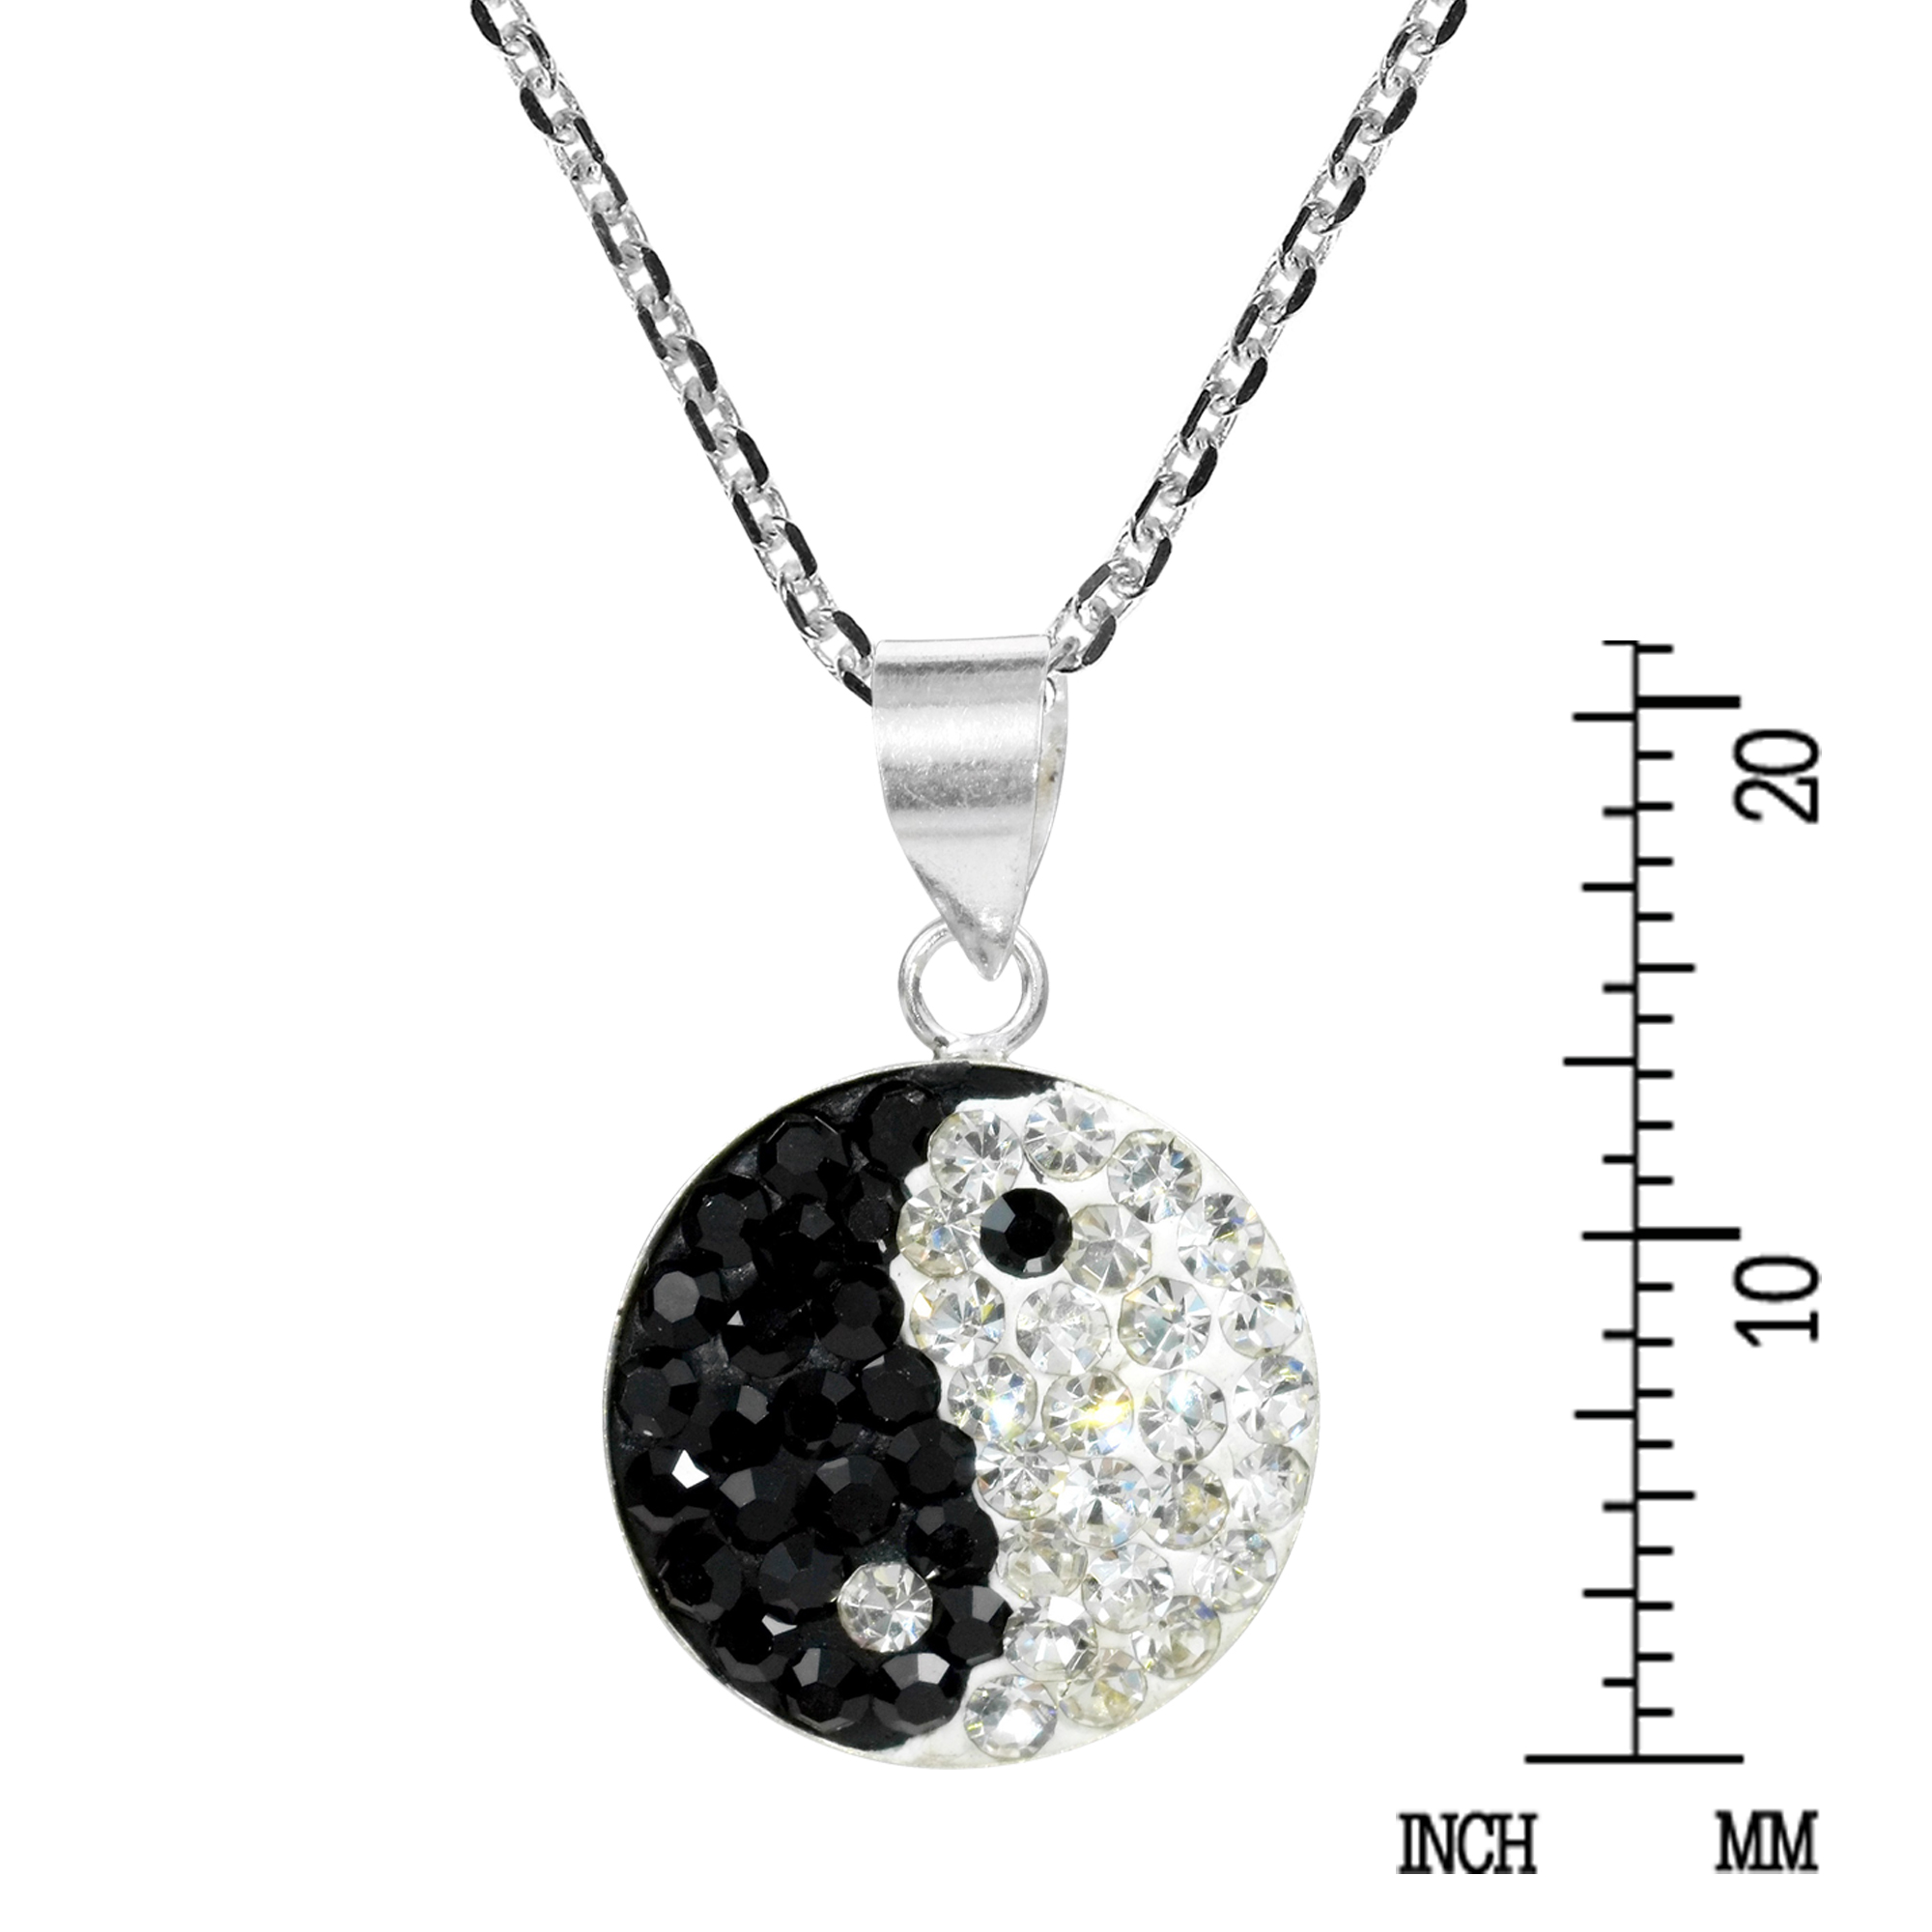 yang black cabochon necklace findings bone charms yin tone and carriage pendants fish